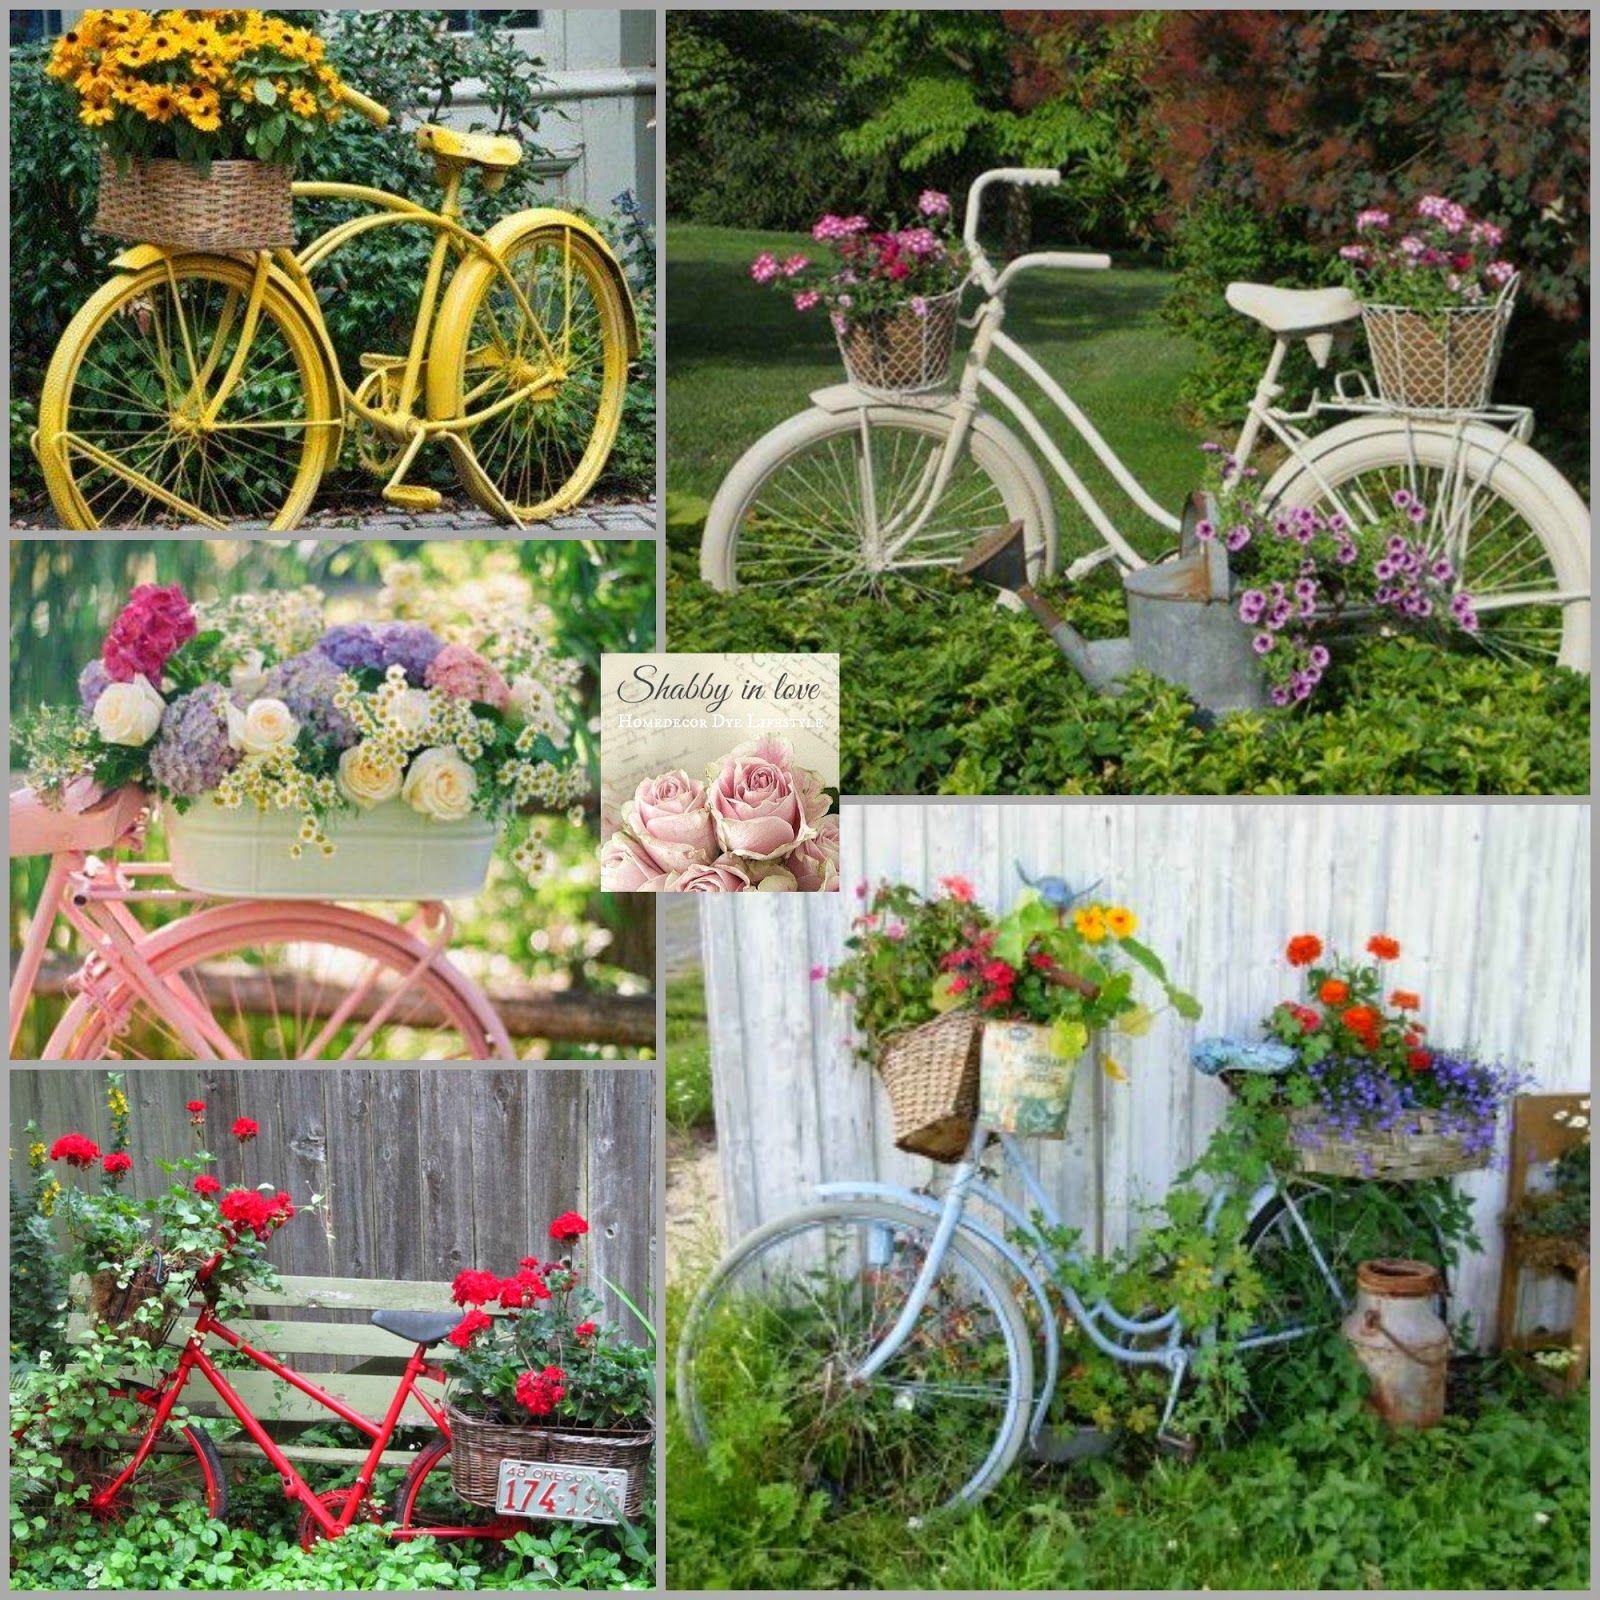 Vintage bicycles upcycled to planters ~ Shabby in love: Lovely ...